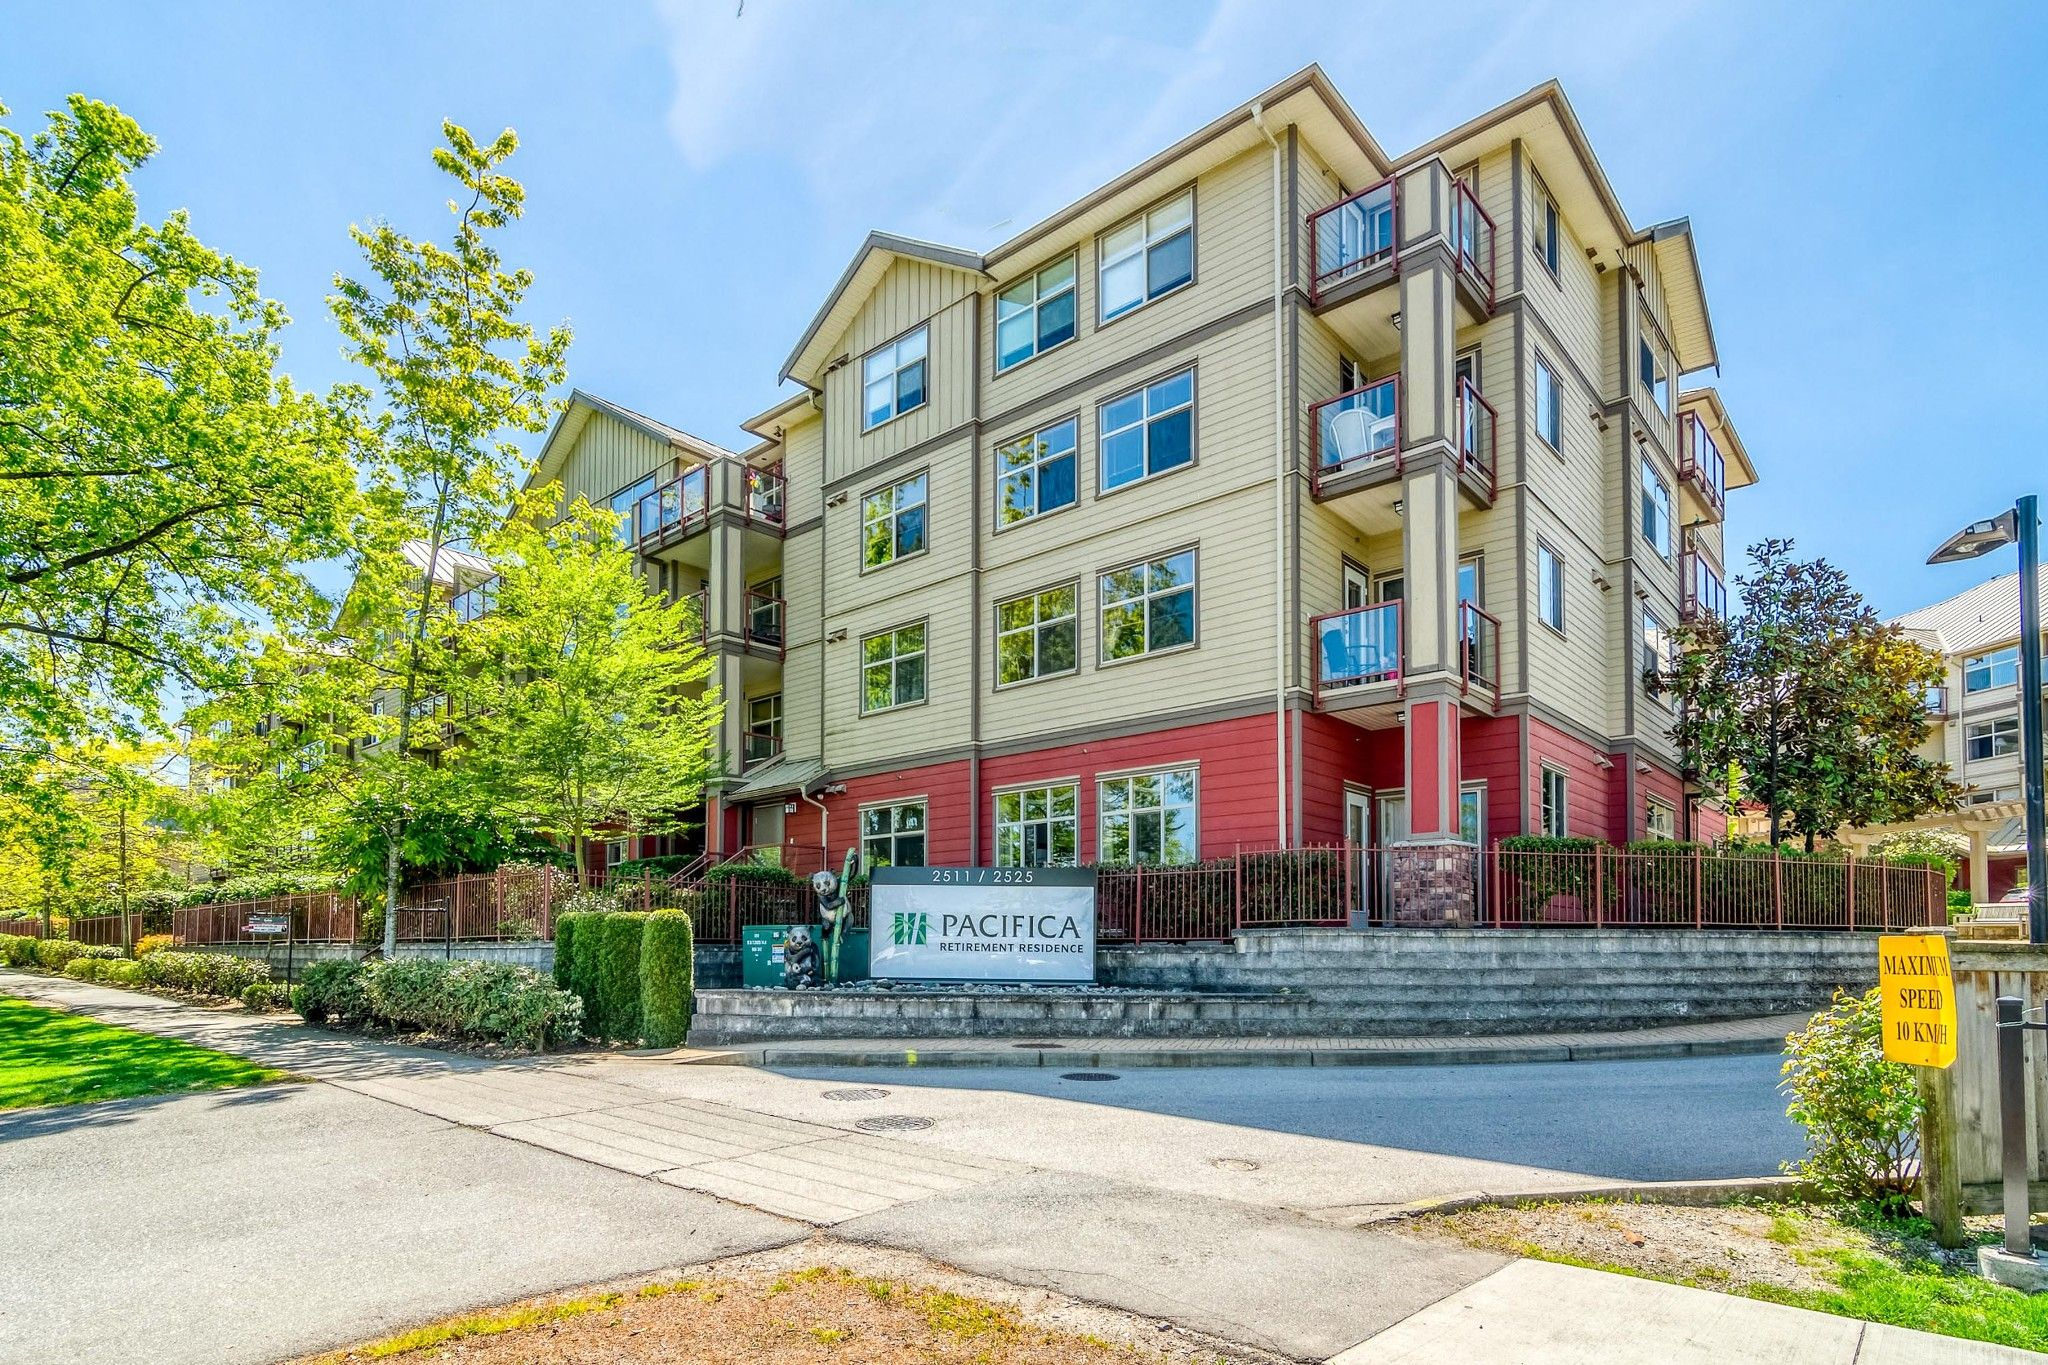 """Main Photo: 106 2511 KING GEORGE Boulevard in Surrey: King George Corridor Condo for sale in """"PACIFICA RETIREMENT RESORT"""" (South Surrey White Rock)  : MLS®# R2388617"""